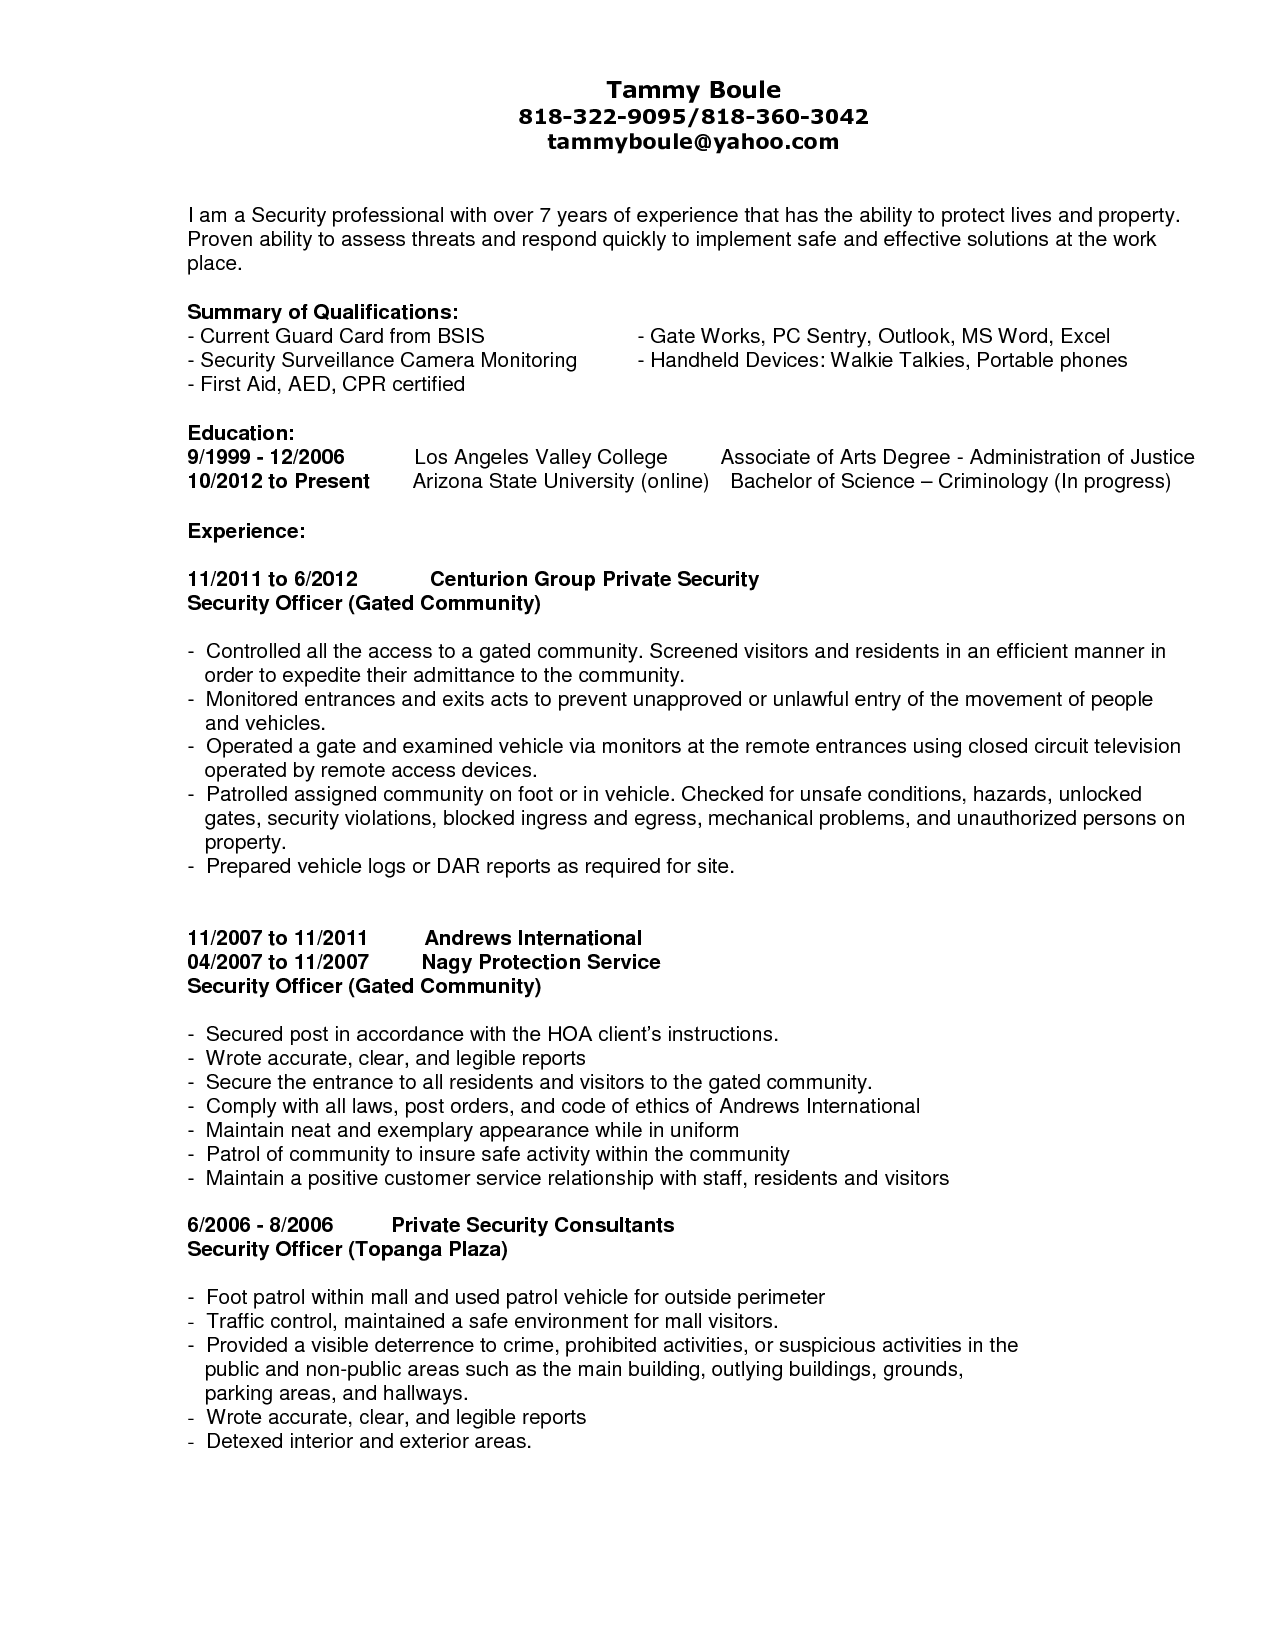 Resume For Hospital Job Guard Security Officer Resume Ideas  Httpwwwjobresumewebsite